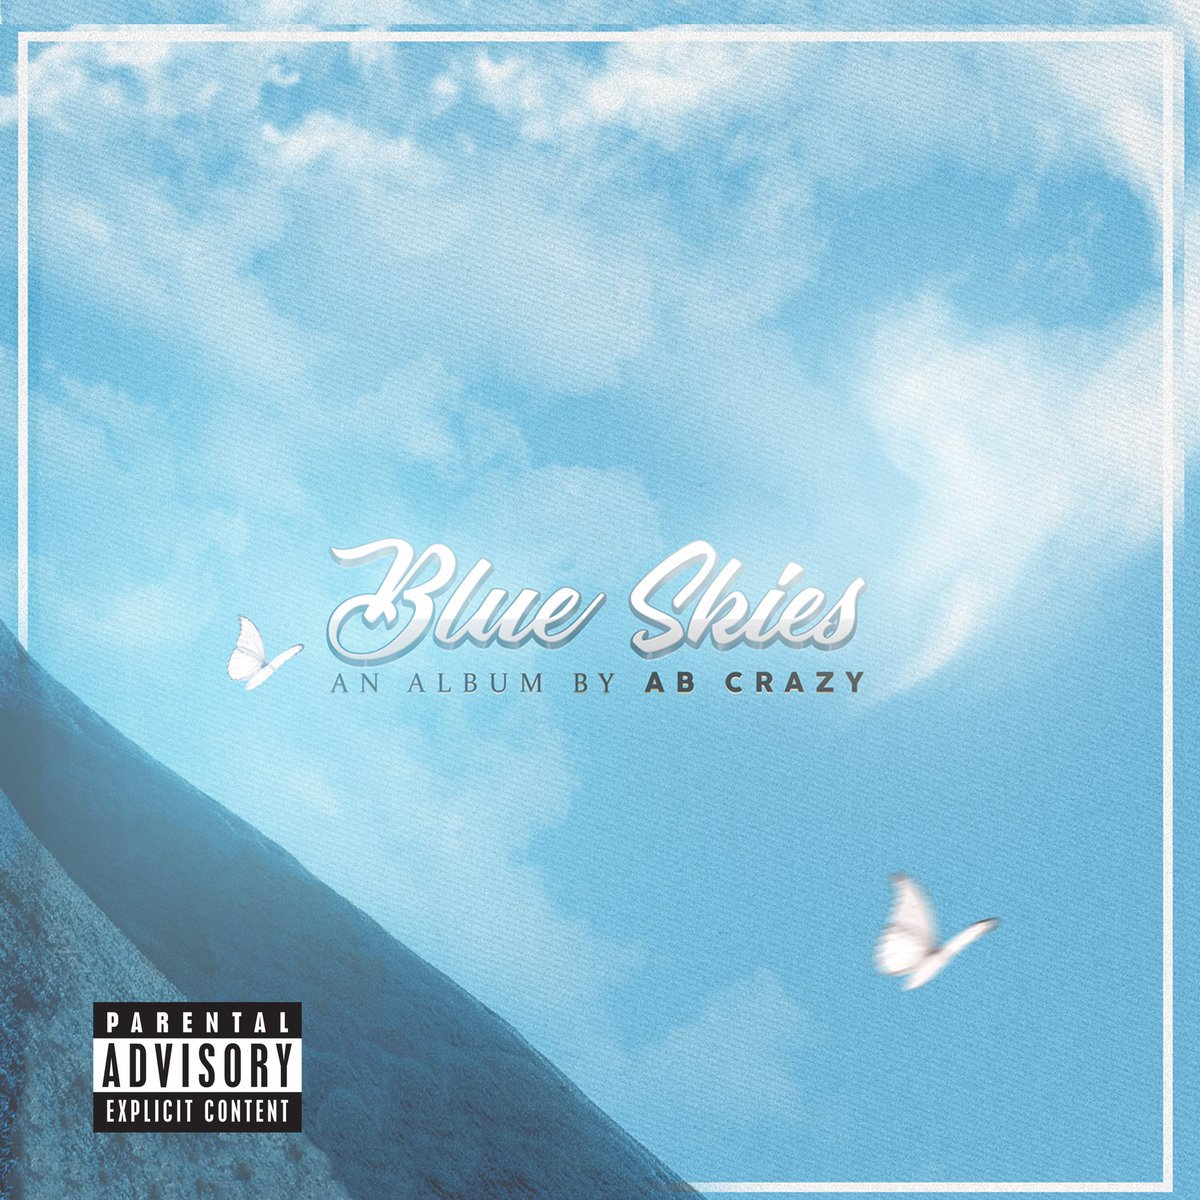 AB Crazy's New 'Blue Skies' Album Drops [Listen] DNr 1xeXUAA6W25